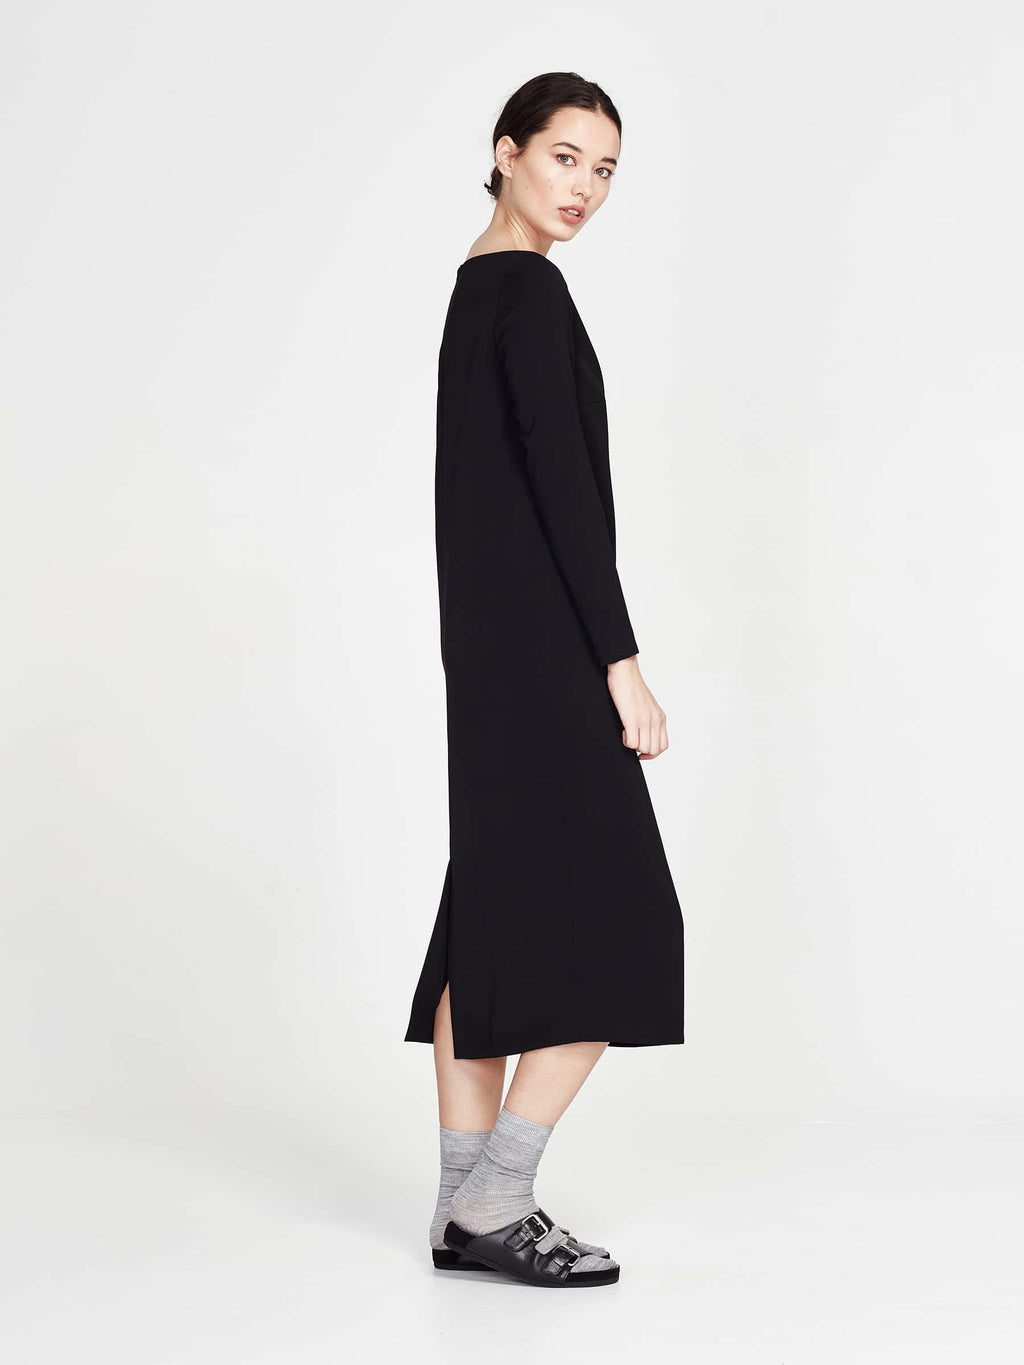 Mae Dress (Matte Crepe) Black